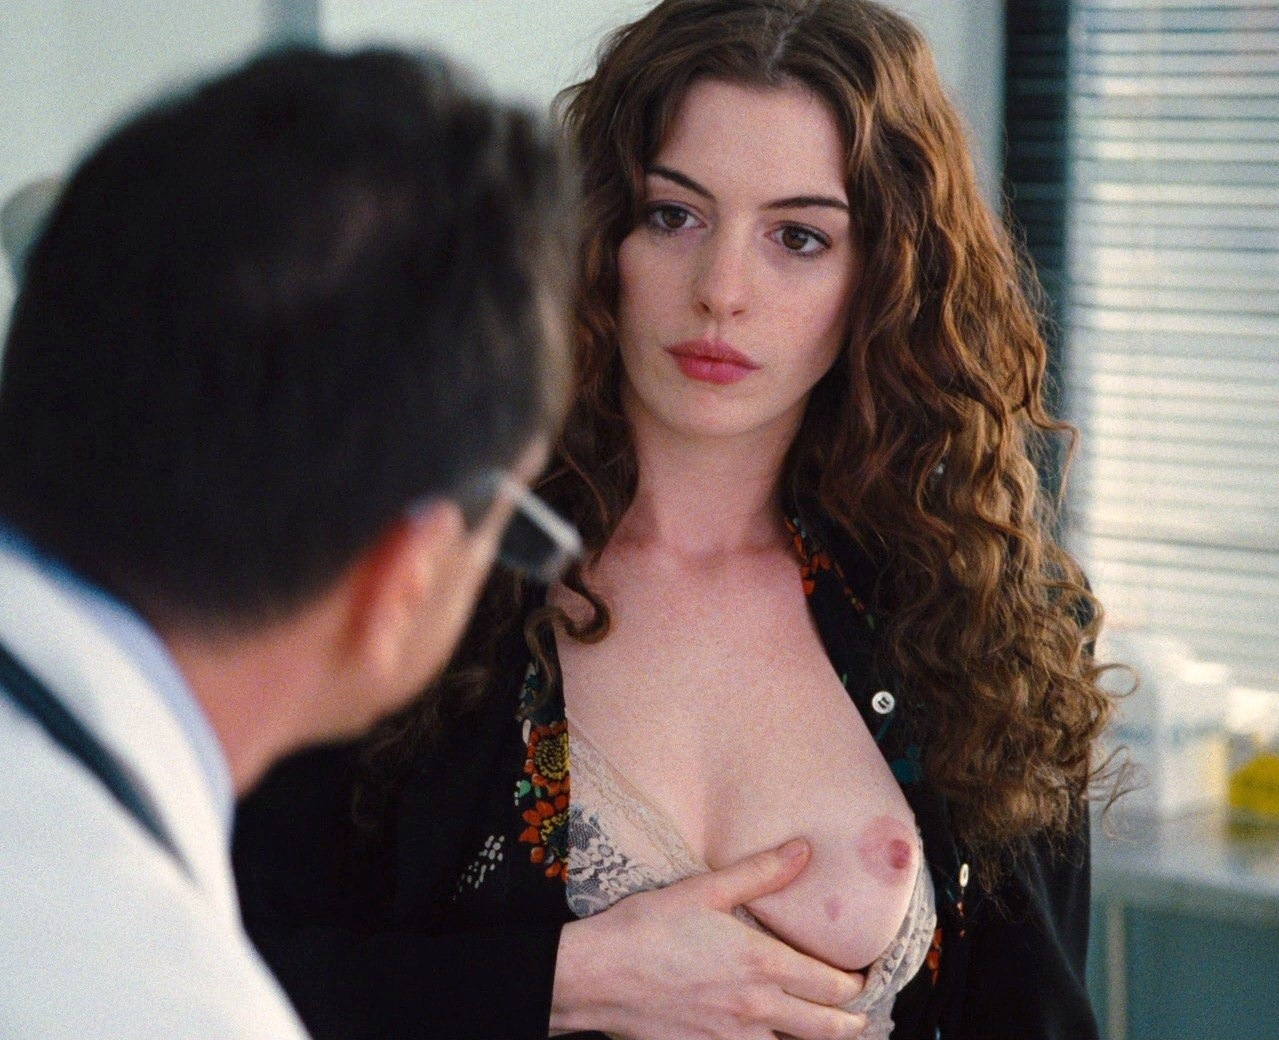 Anne hathaway nude paparazzi